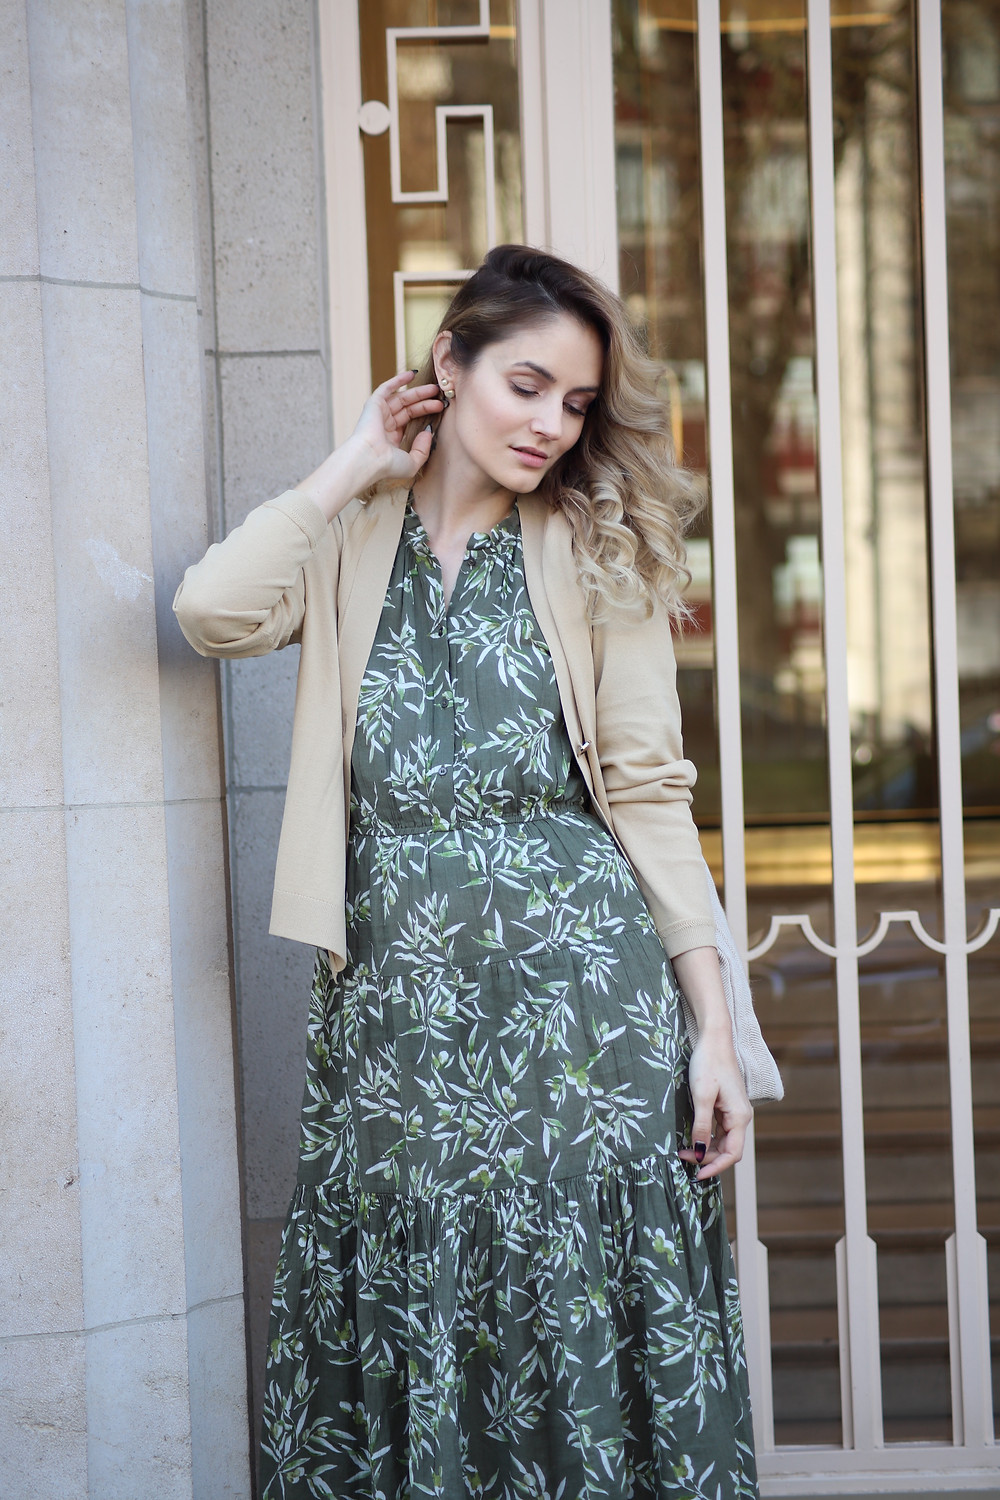 dress-and-cardigan-outfit.jpg